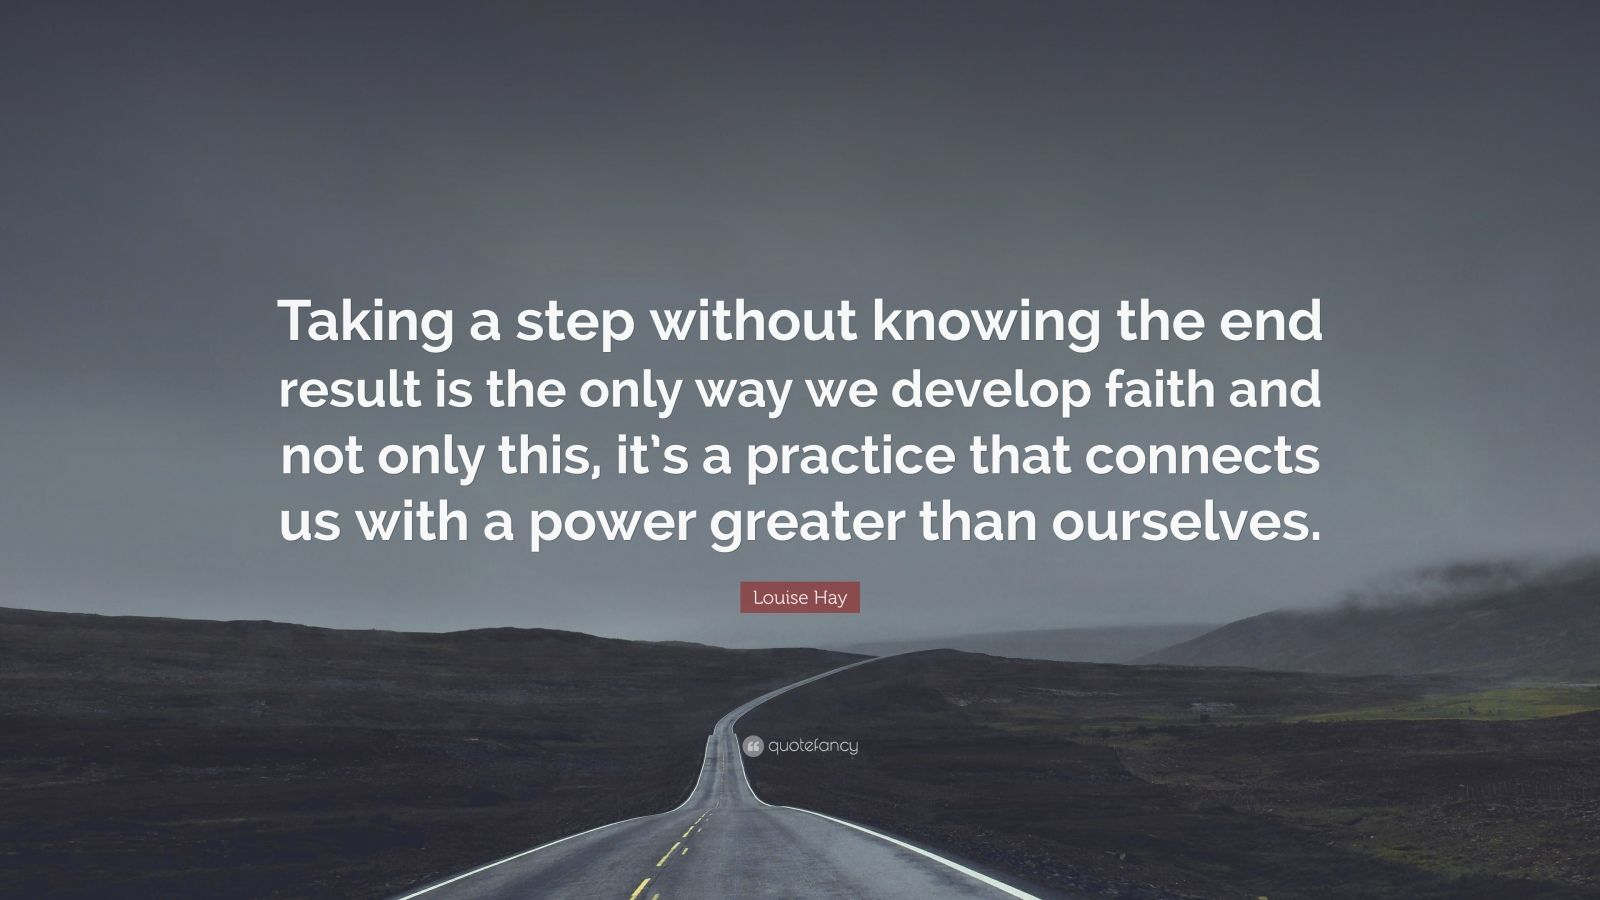 """Louise Hay Quote: """"Taking a step without knowing the end result is the only way we develop faith and not only this, it's a practice that connects us with a power greater than ourselves."""""""